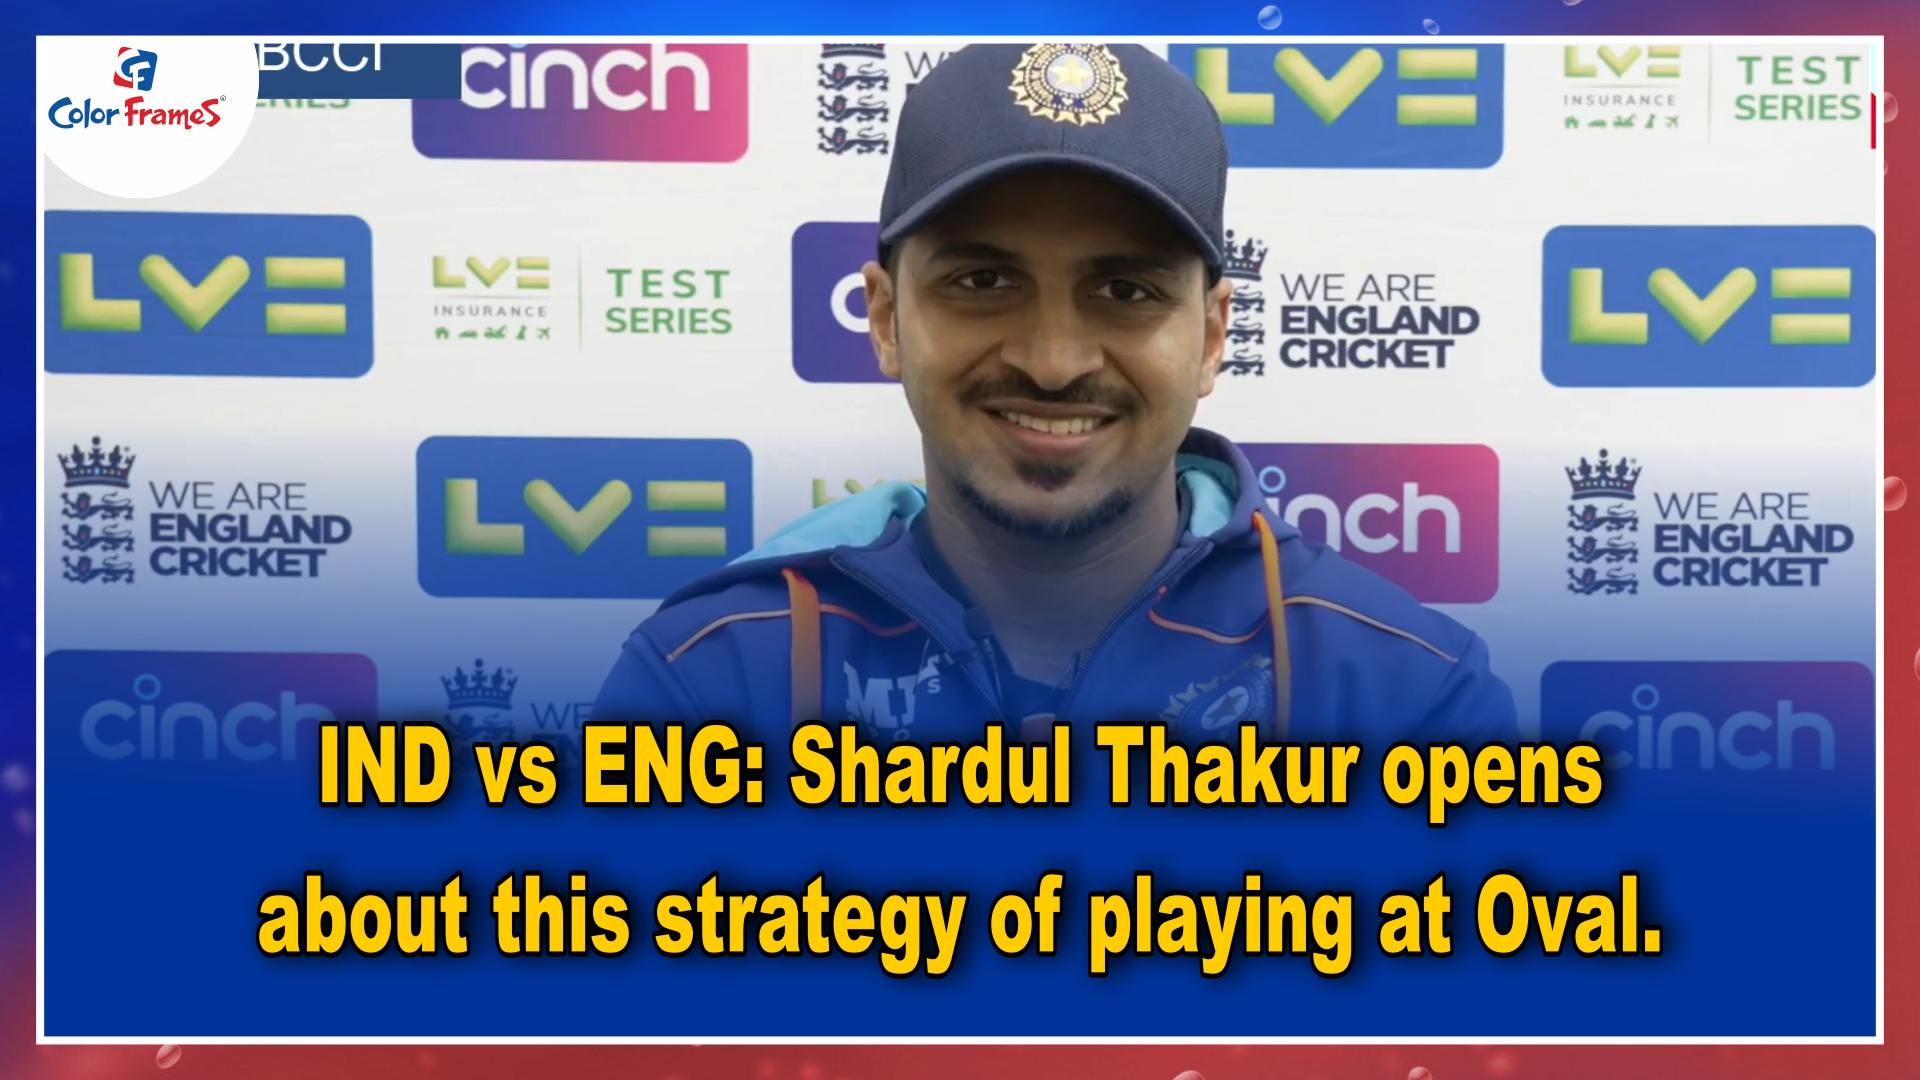 IND vs ENG: Shardul Thakur opens about this strategy of playing at Oval.